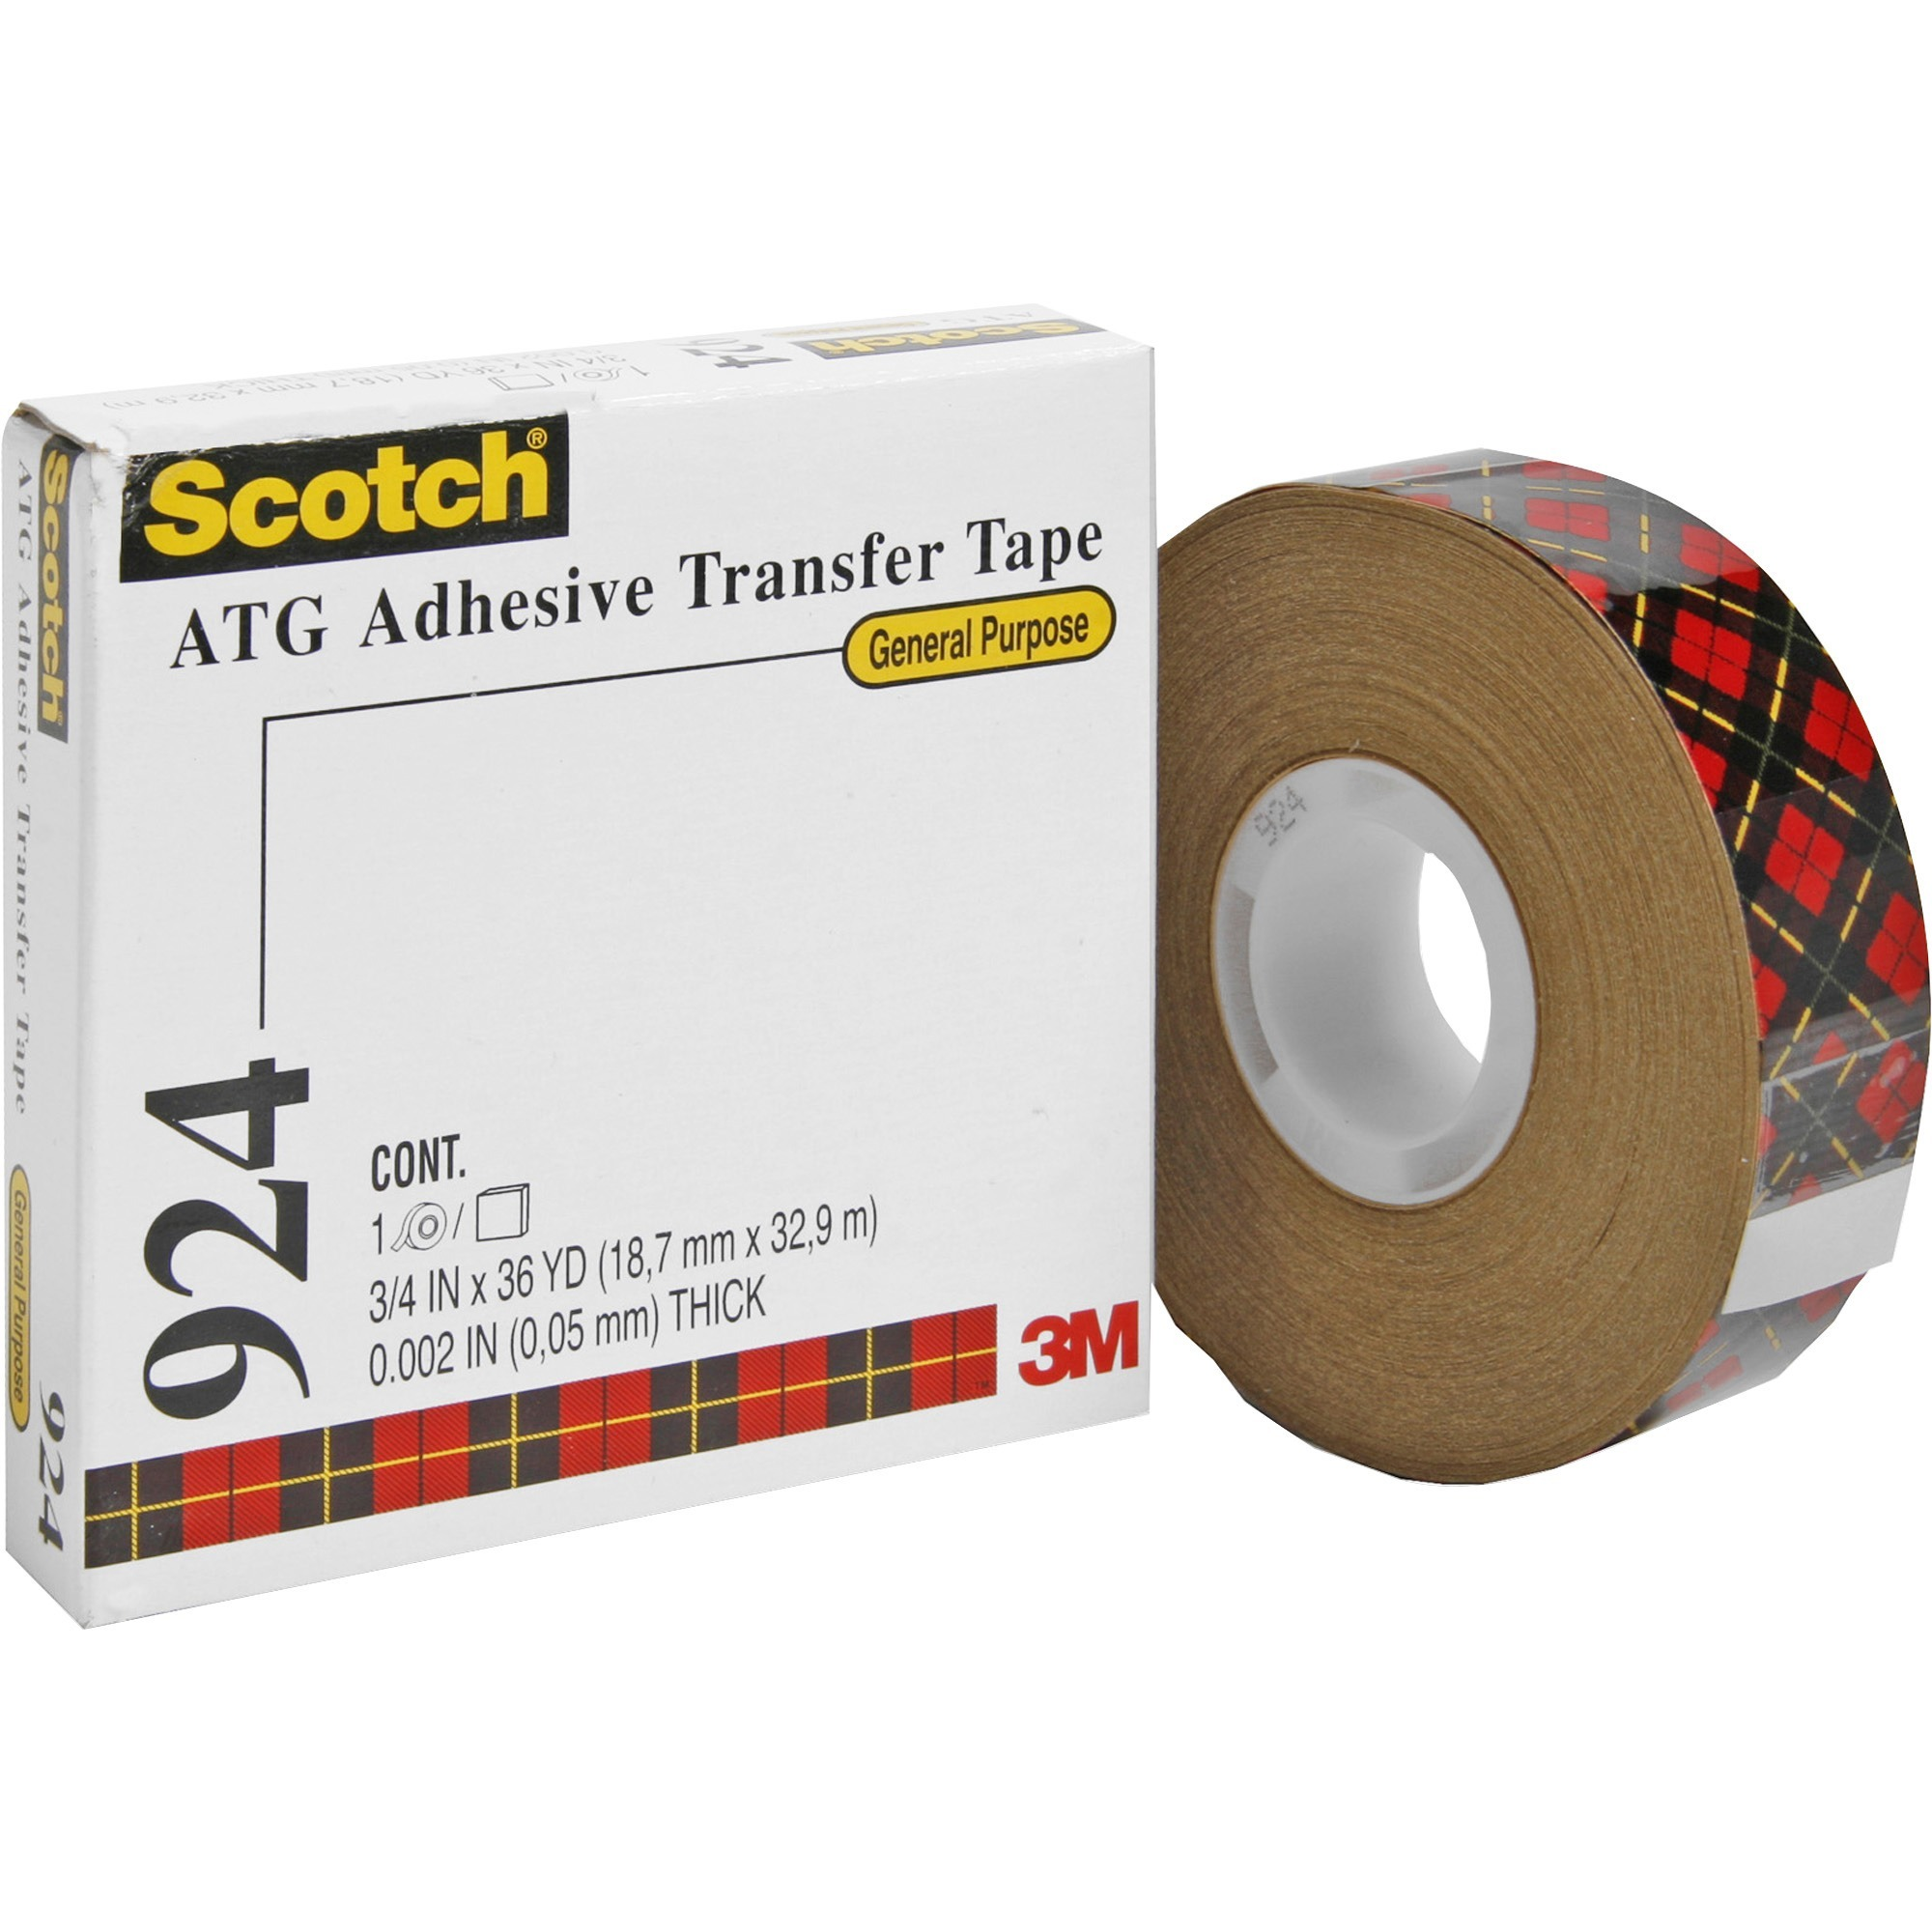 "3M #924 Adhesive Transfer Tape, 3/4"" x 36 yds."